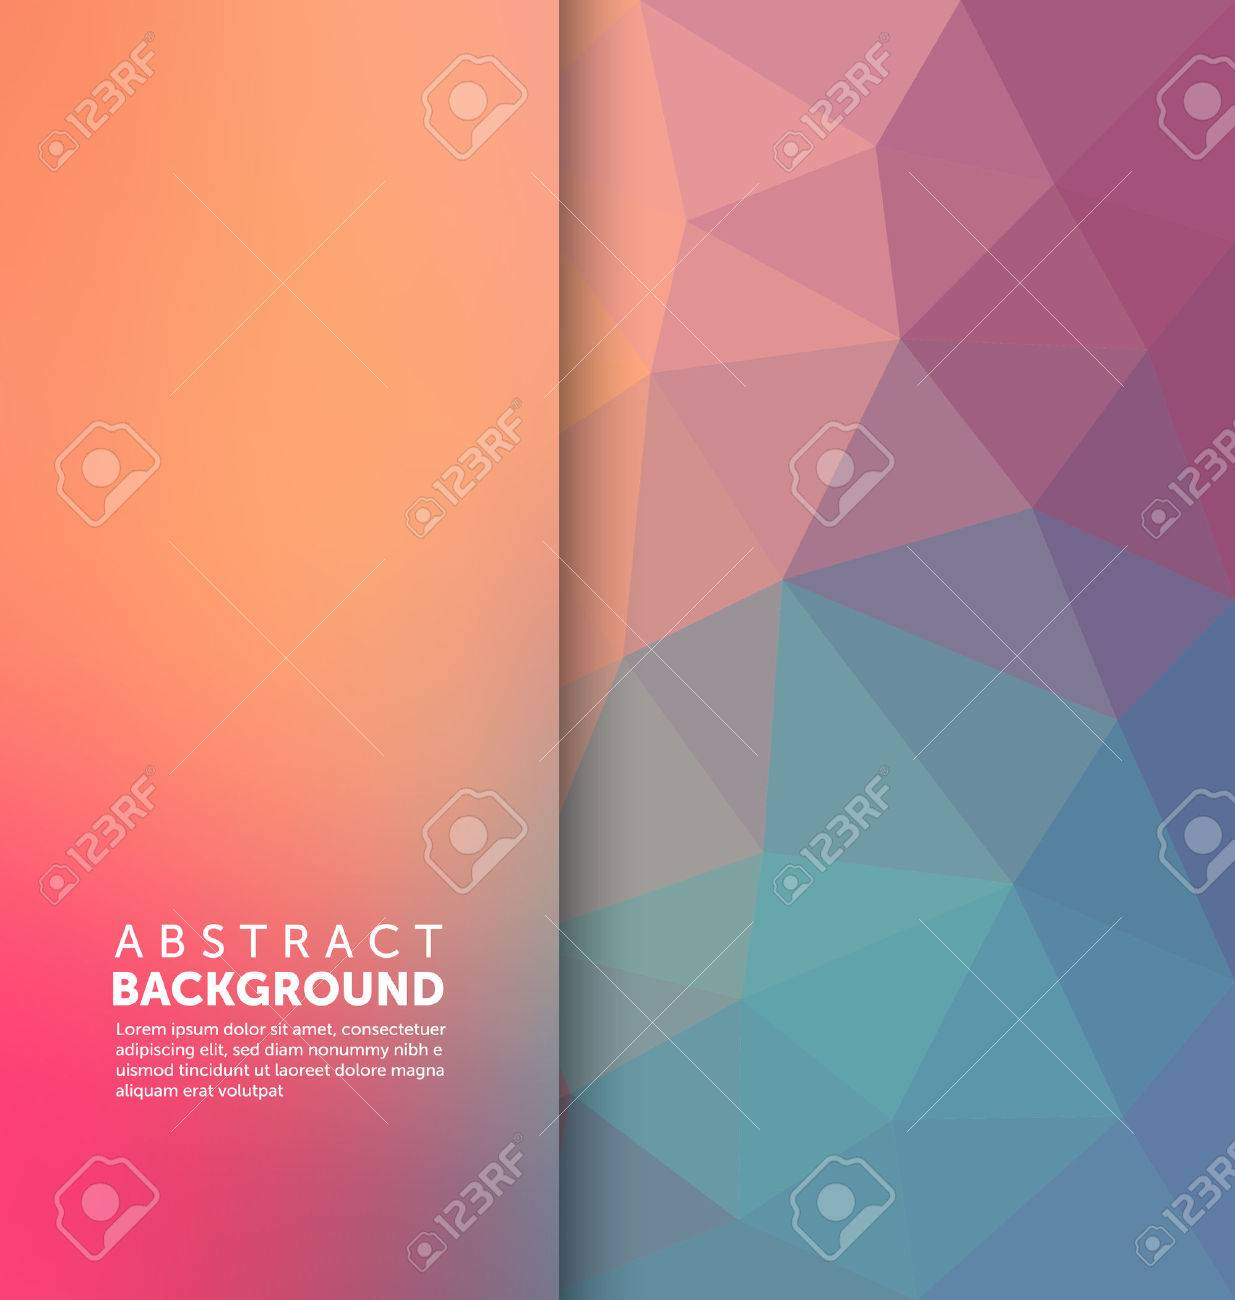 Abstract Background - Triangle and blurred banner design - 45168697